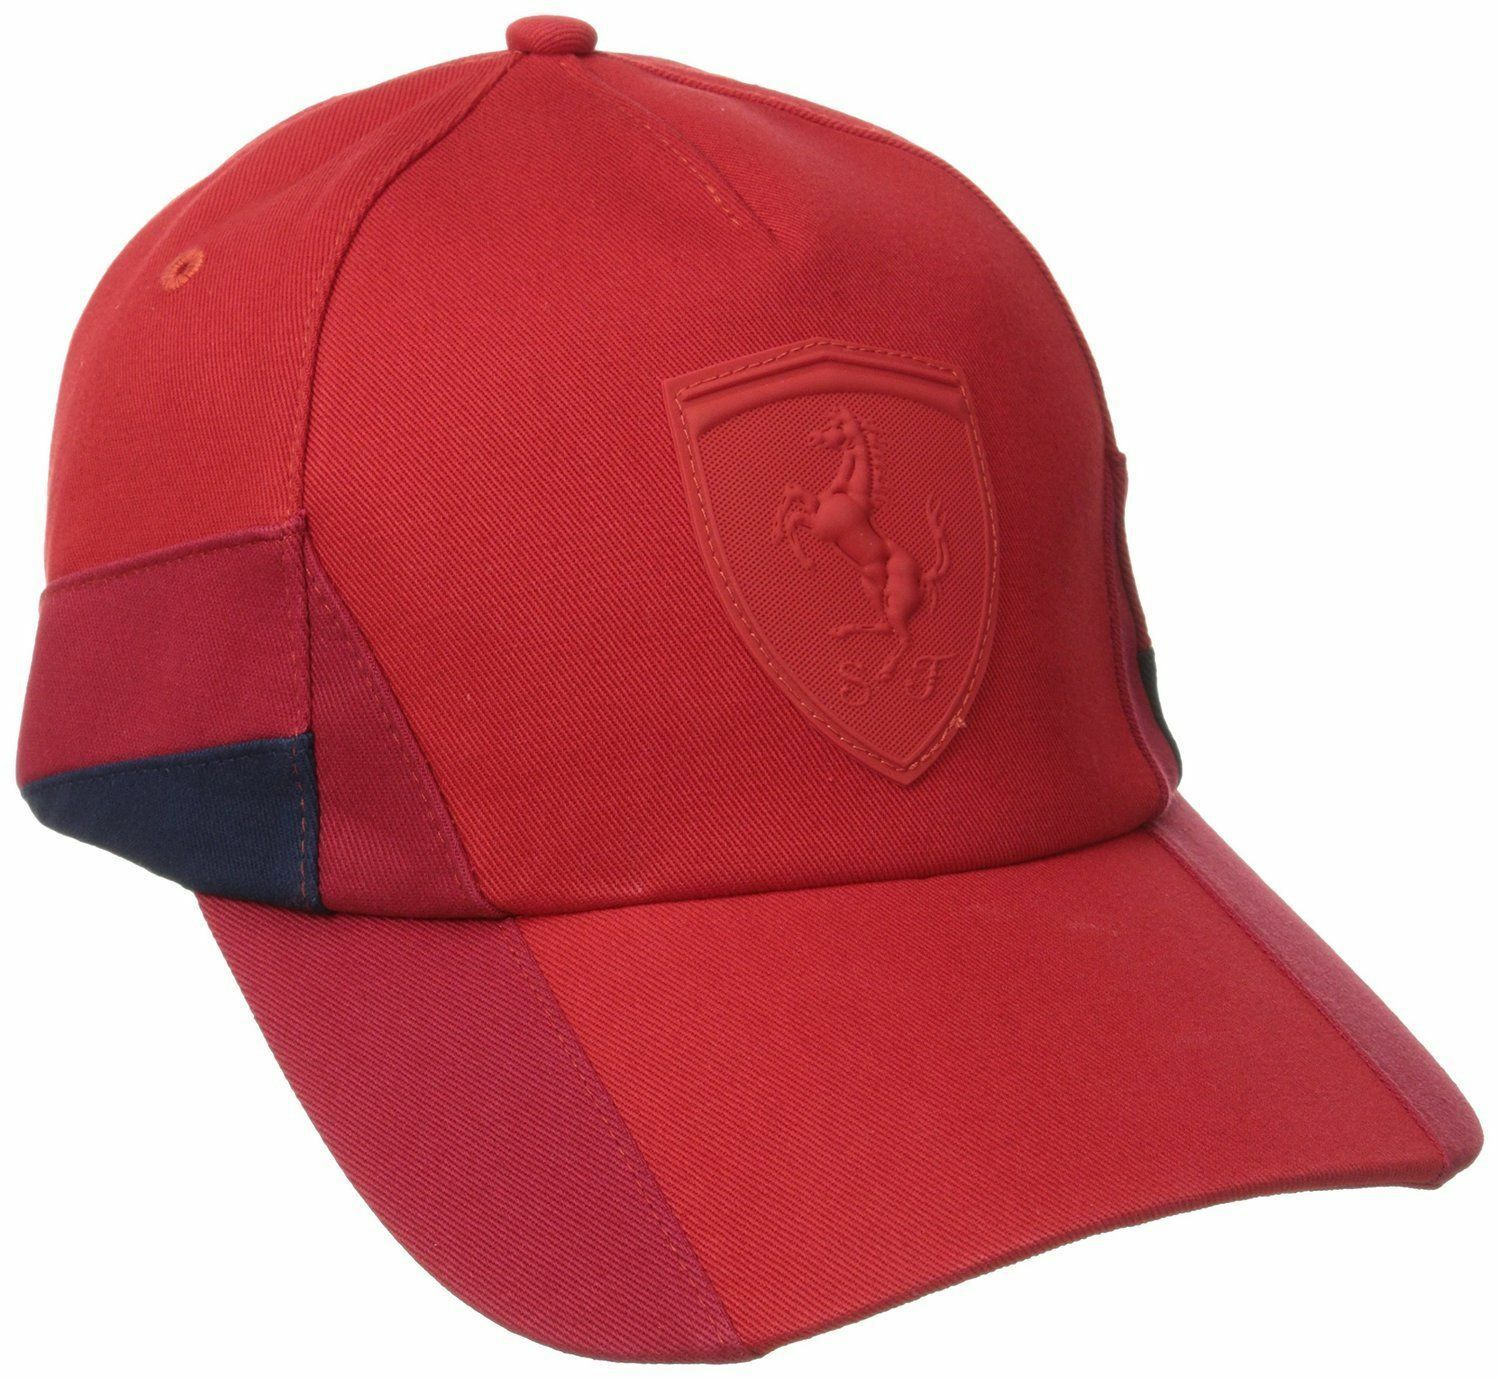 caps sf ferrari men p canada puma size knit one authentic cap s mens